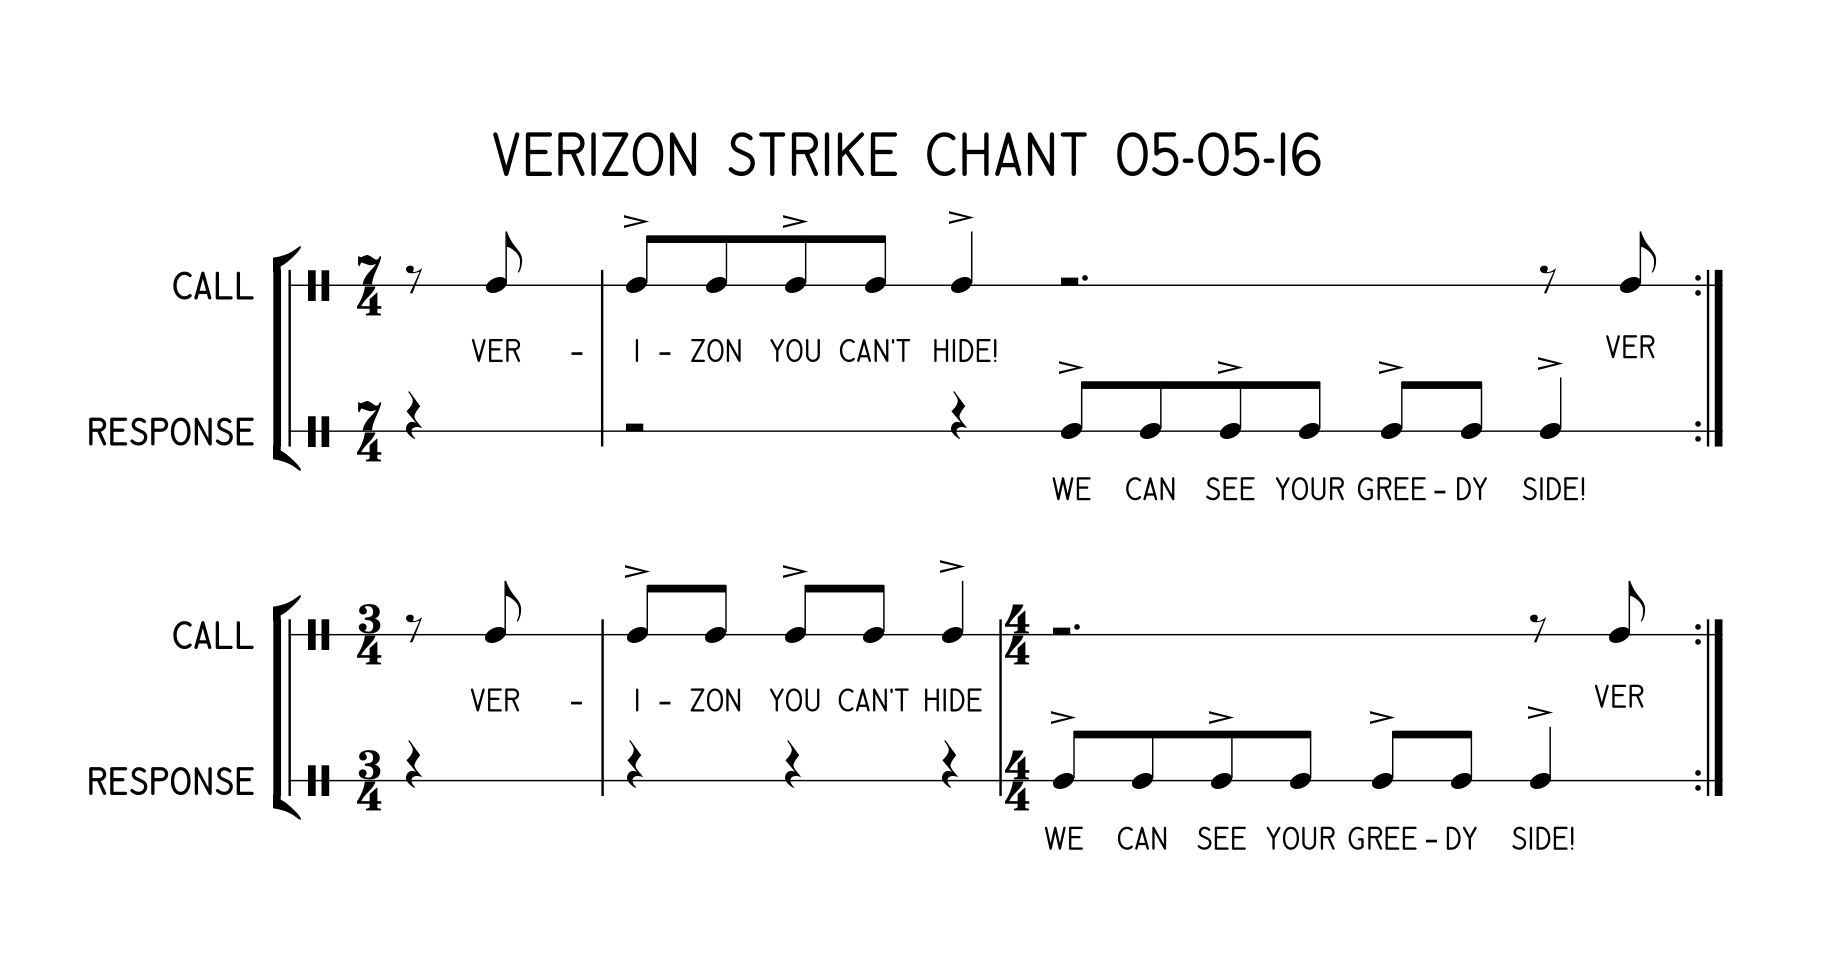 On top, the chant dictated in 7/4 time. The bottom in 3/4+4/4.